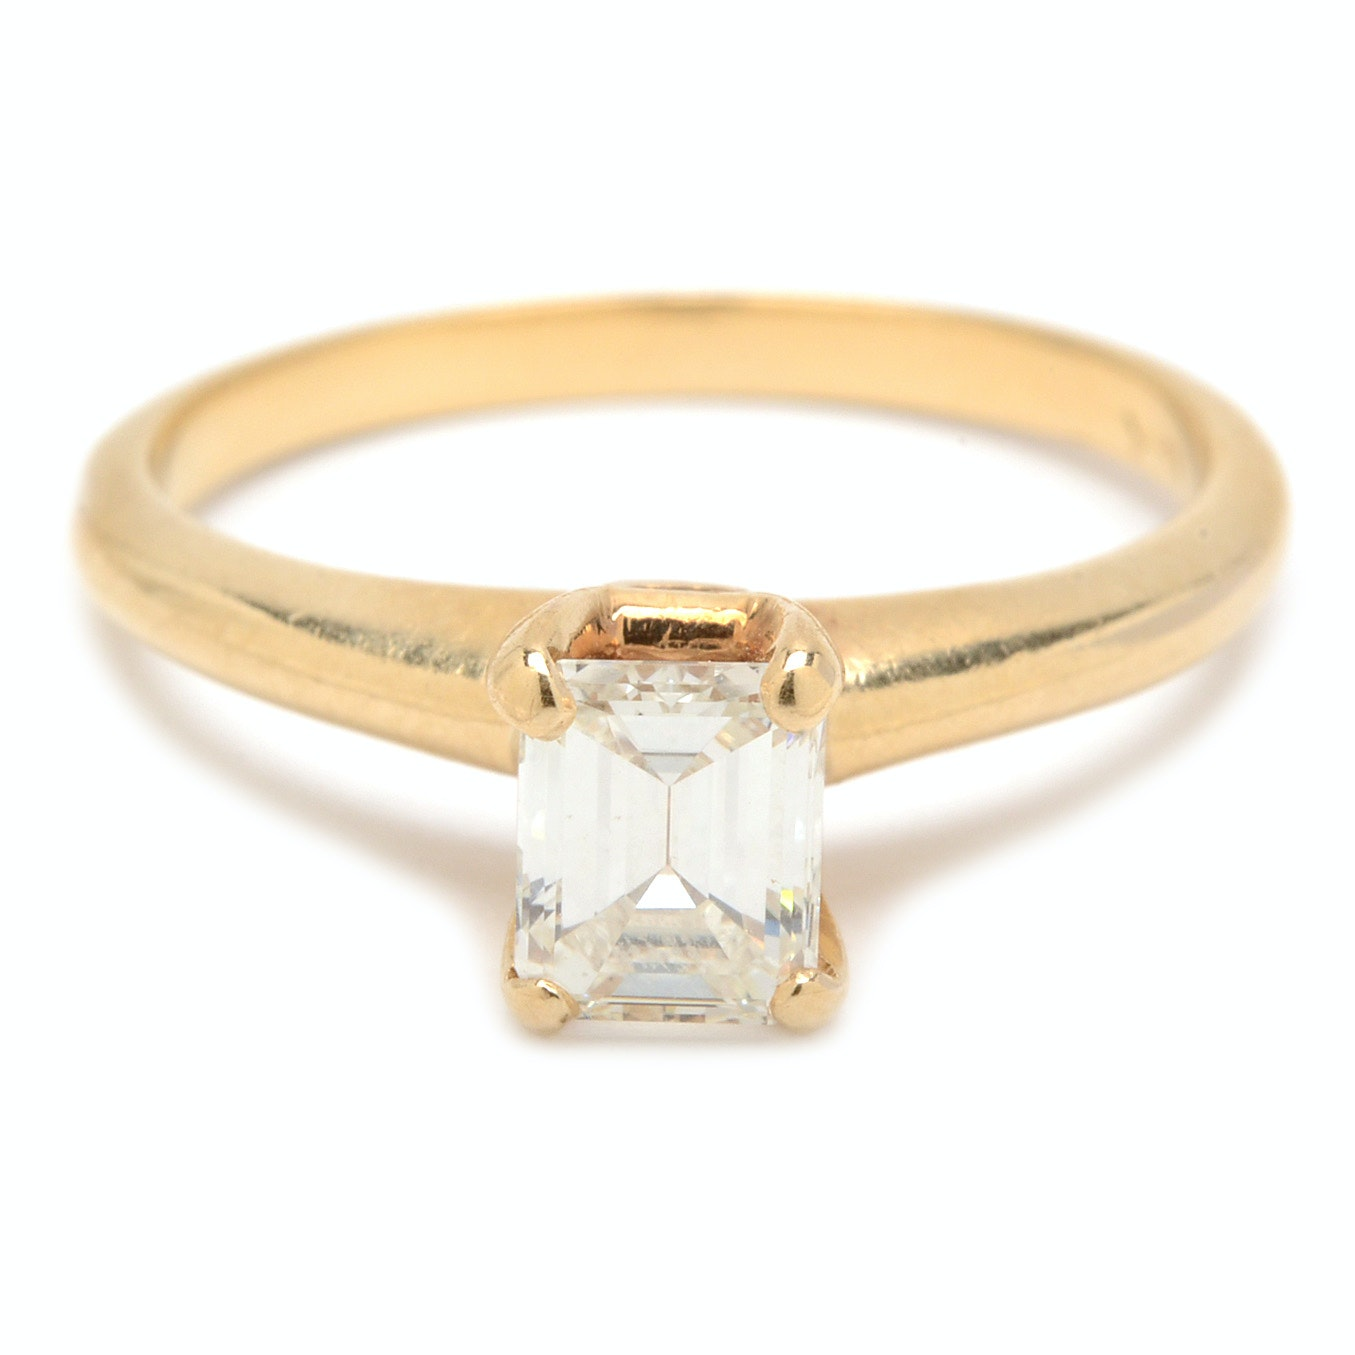 14K Yellow Gold Emerald Cut Diamond Solitaire Ring